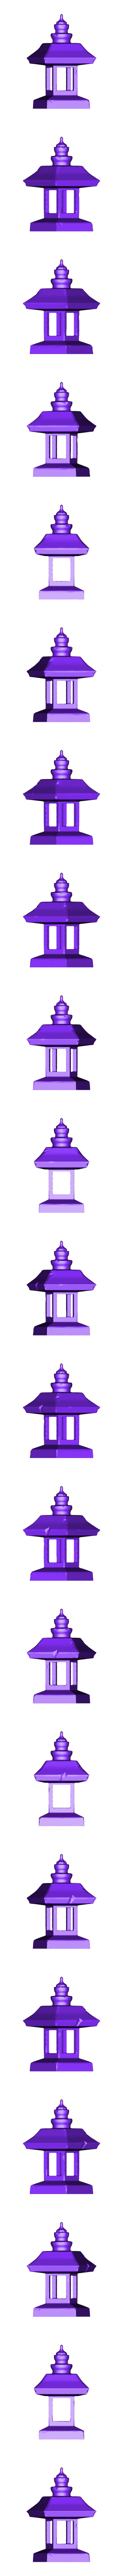 Top_piece.stl Download free STL file Pagoda Garden Ornament • 3D printer model, ricardo-jfa